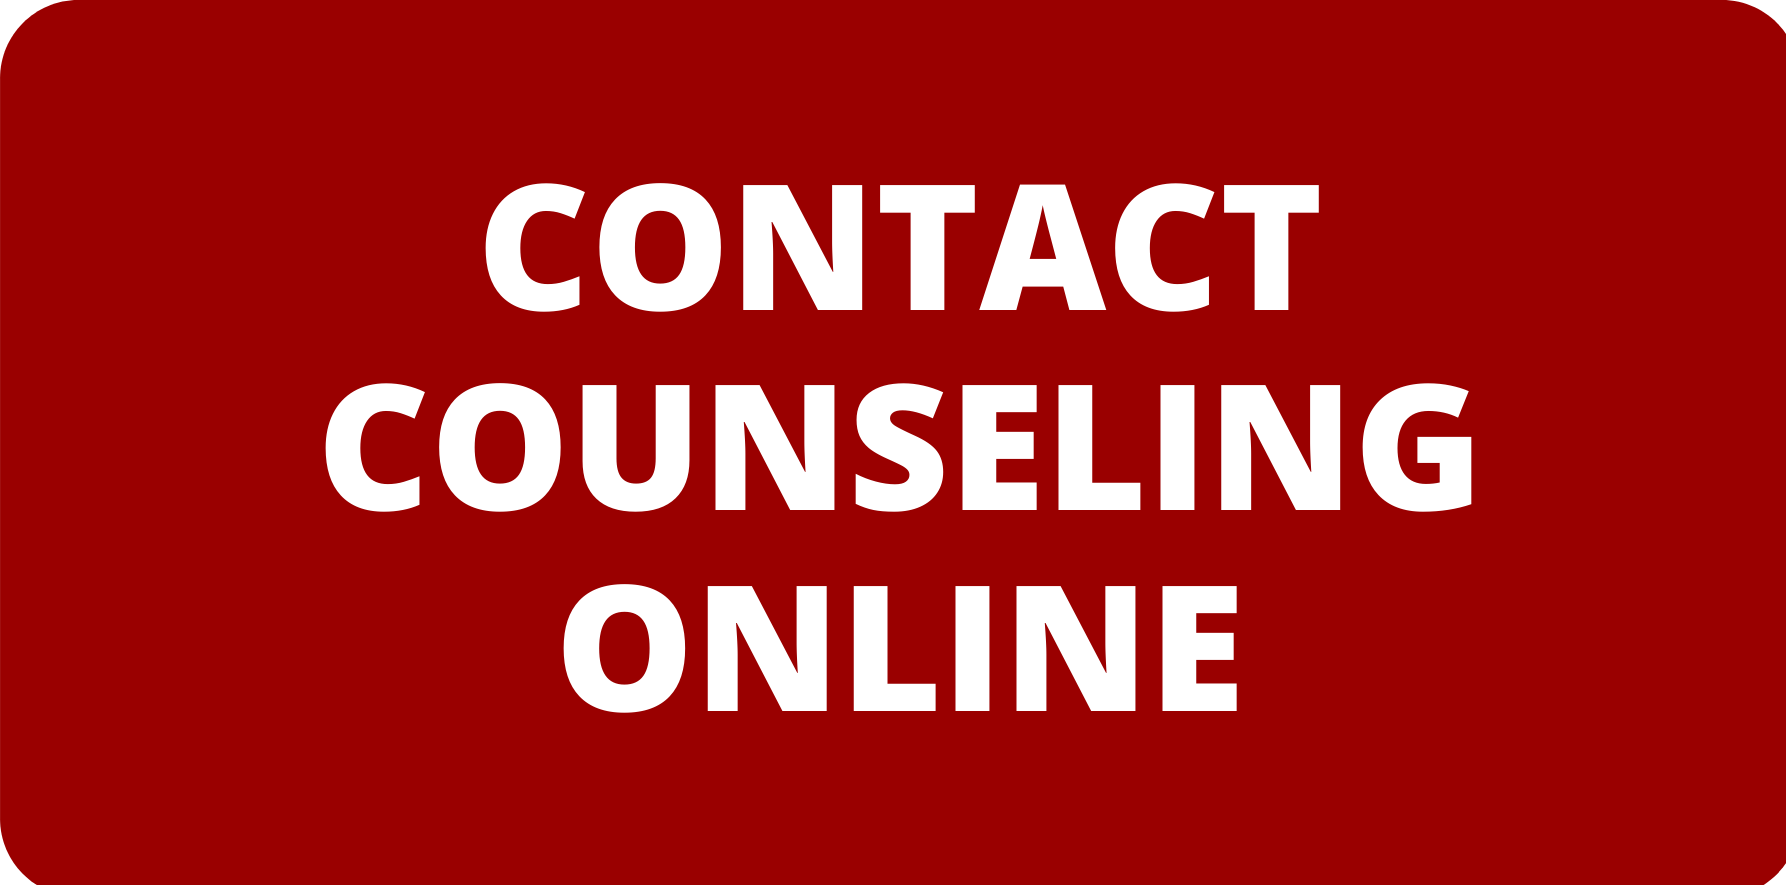 Contact Counseling Online